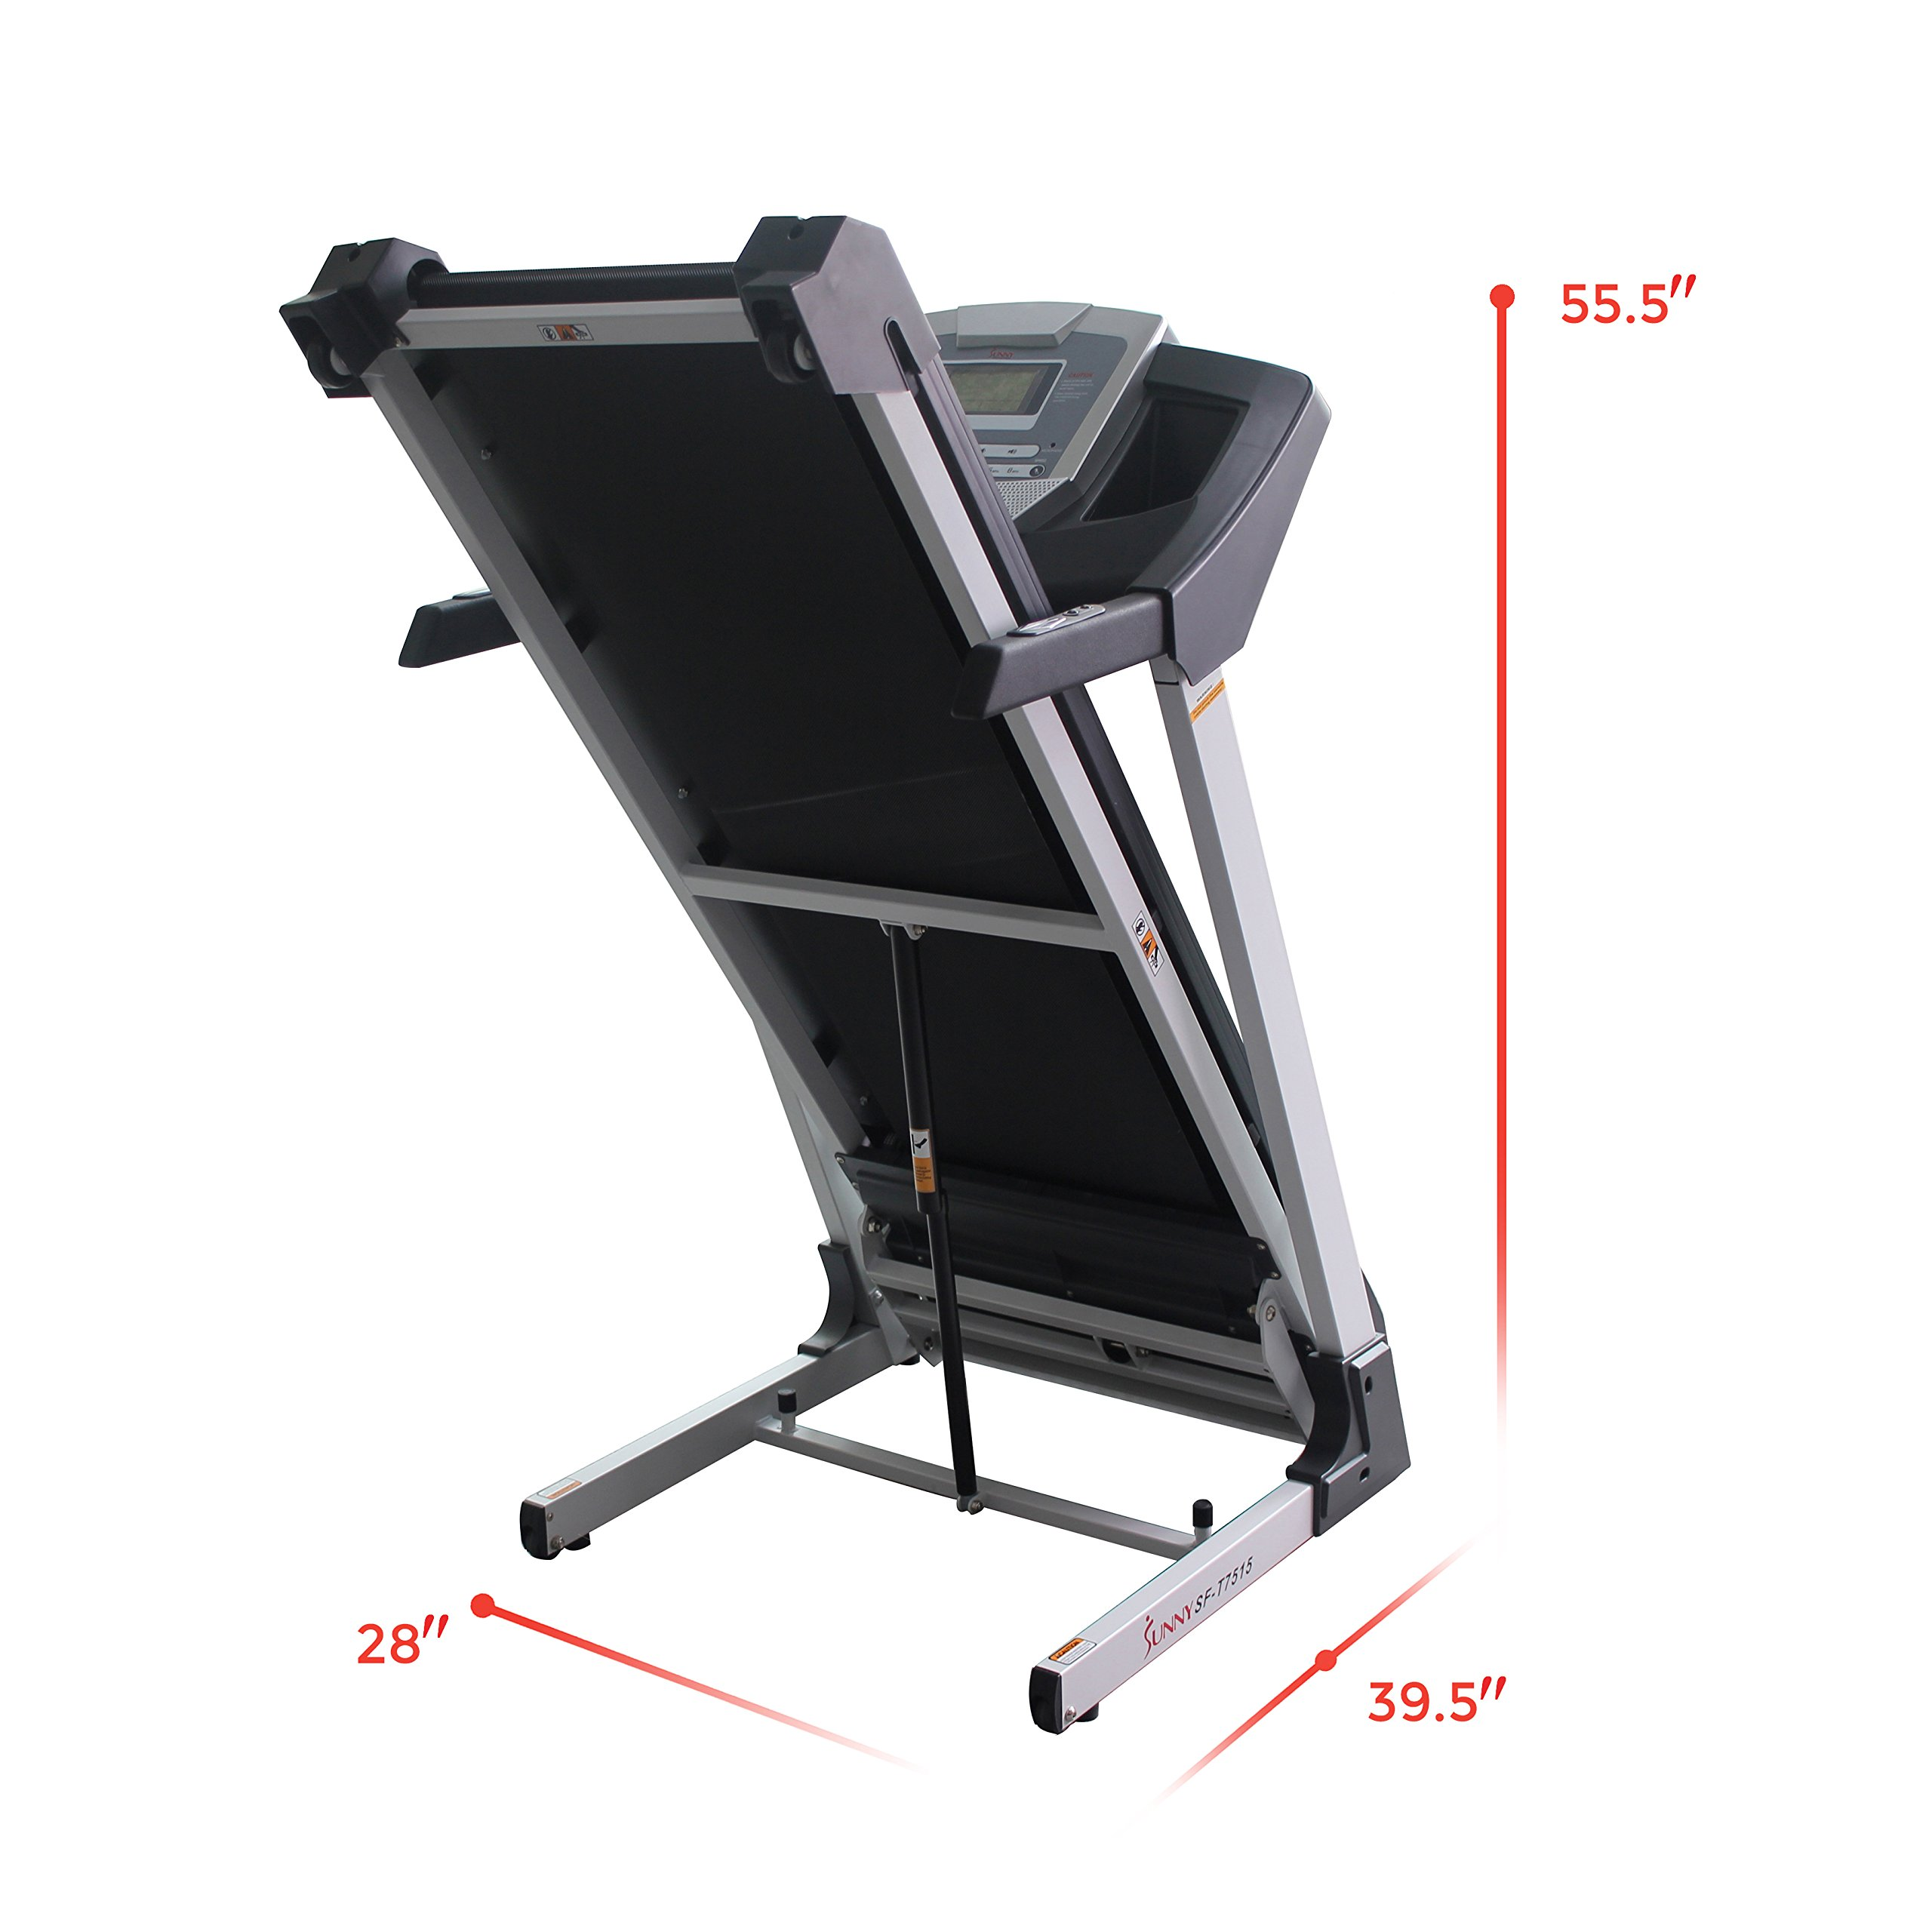 Sunny Health & Fitness SF-T7515 Smart Treadmill with Auto Incline, Bluetooth and BMI Calculator by Sunny Health & Fitness (Image #17)